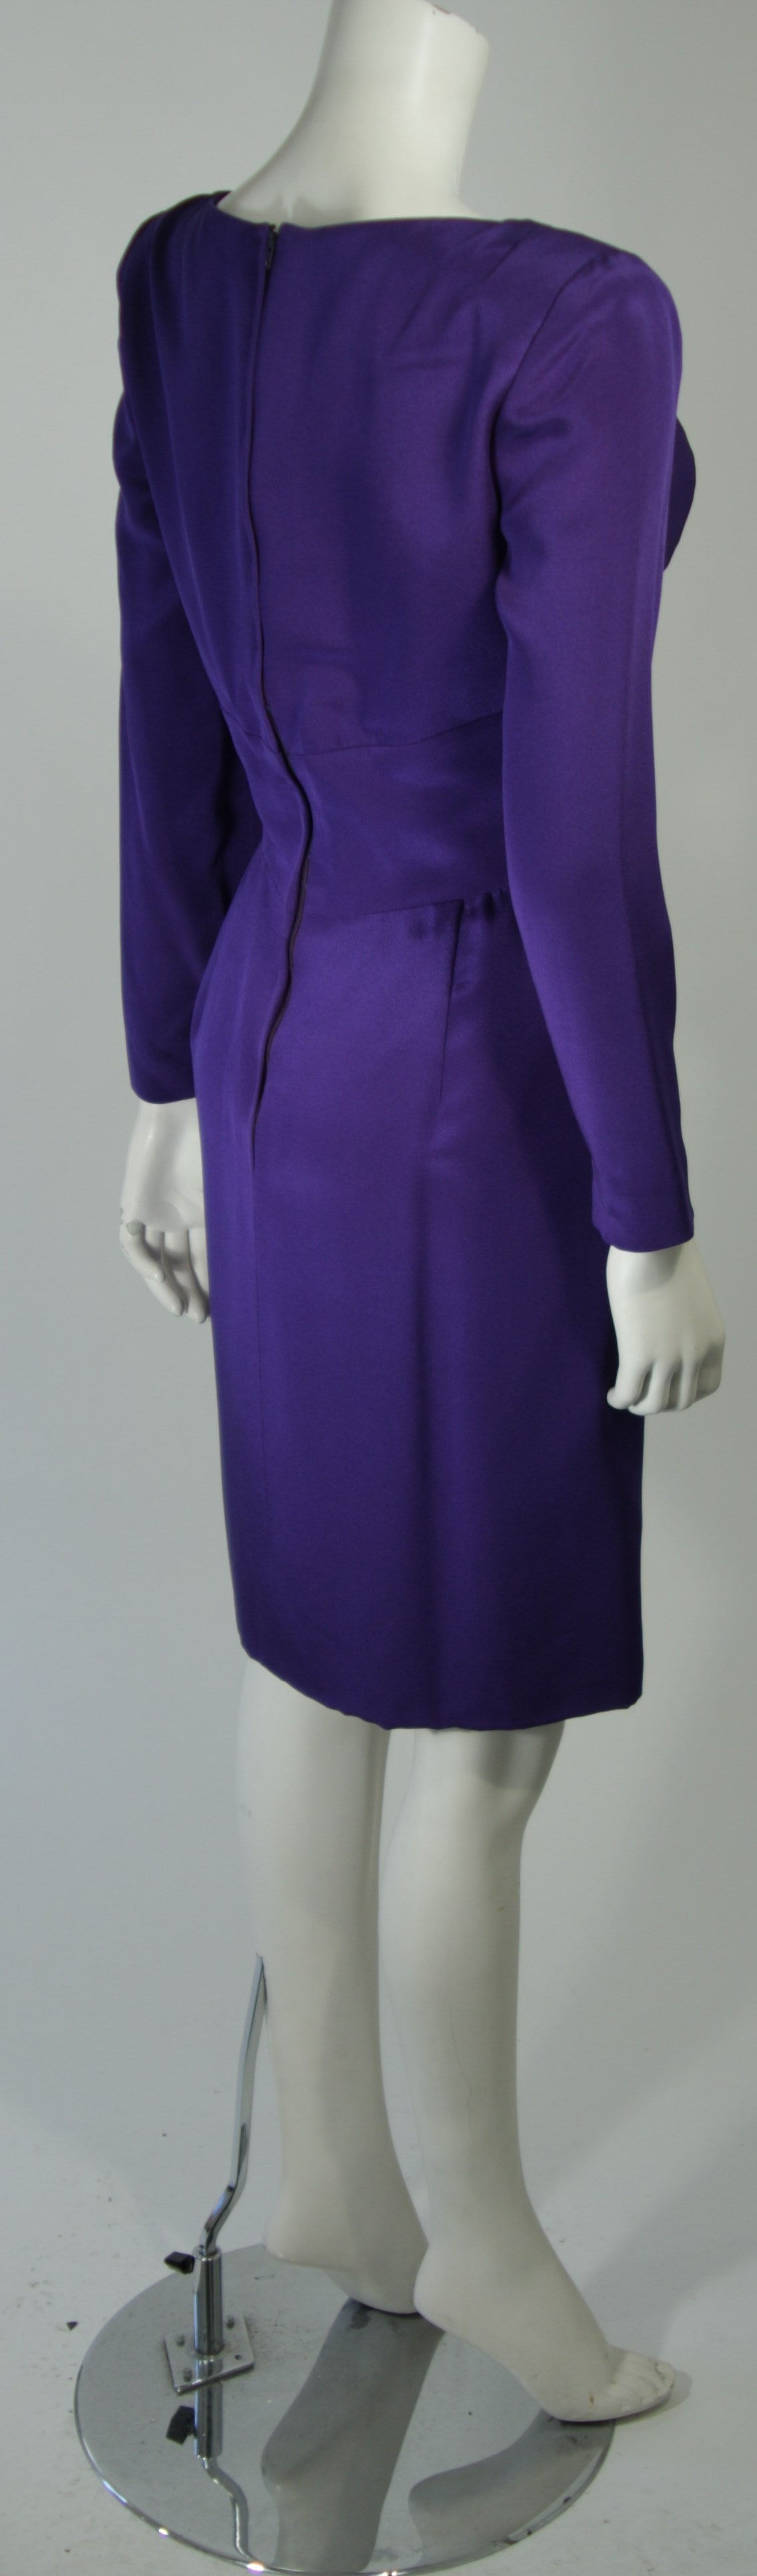 Travilla Purple Silk Long Sleeve Cocktail Dress with Draping Size 8 For Sale 4